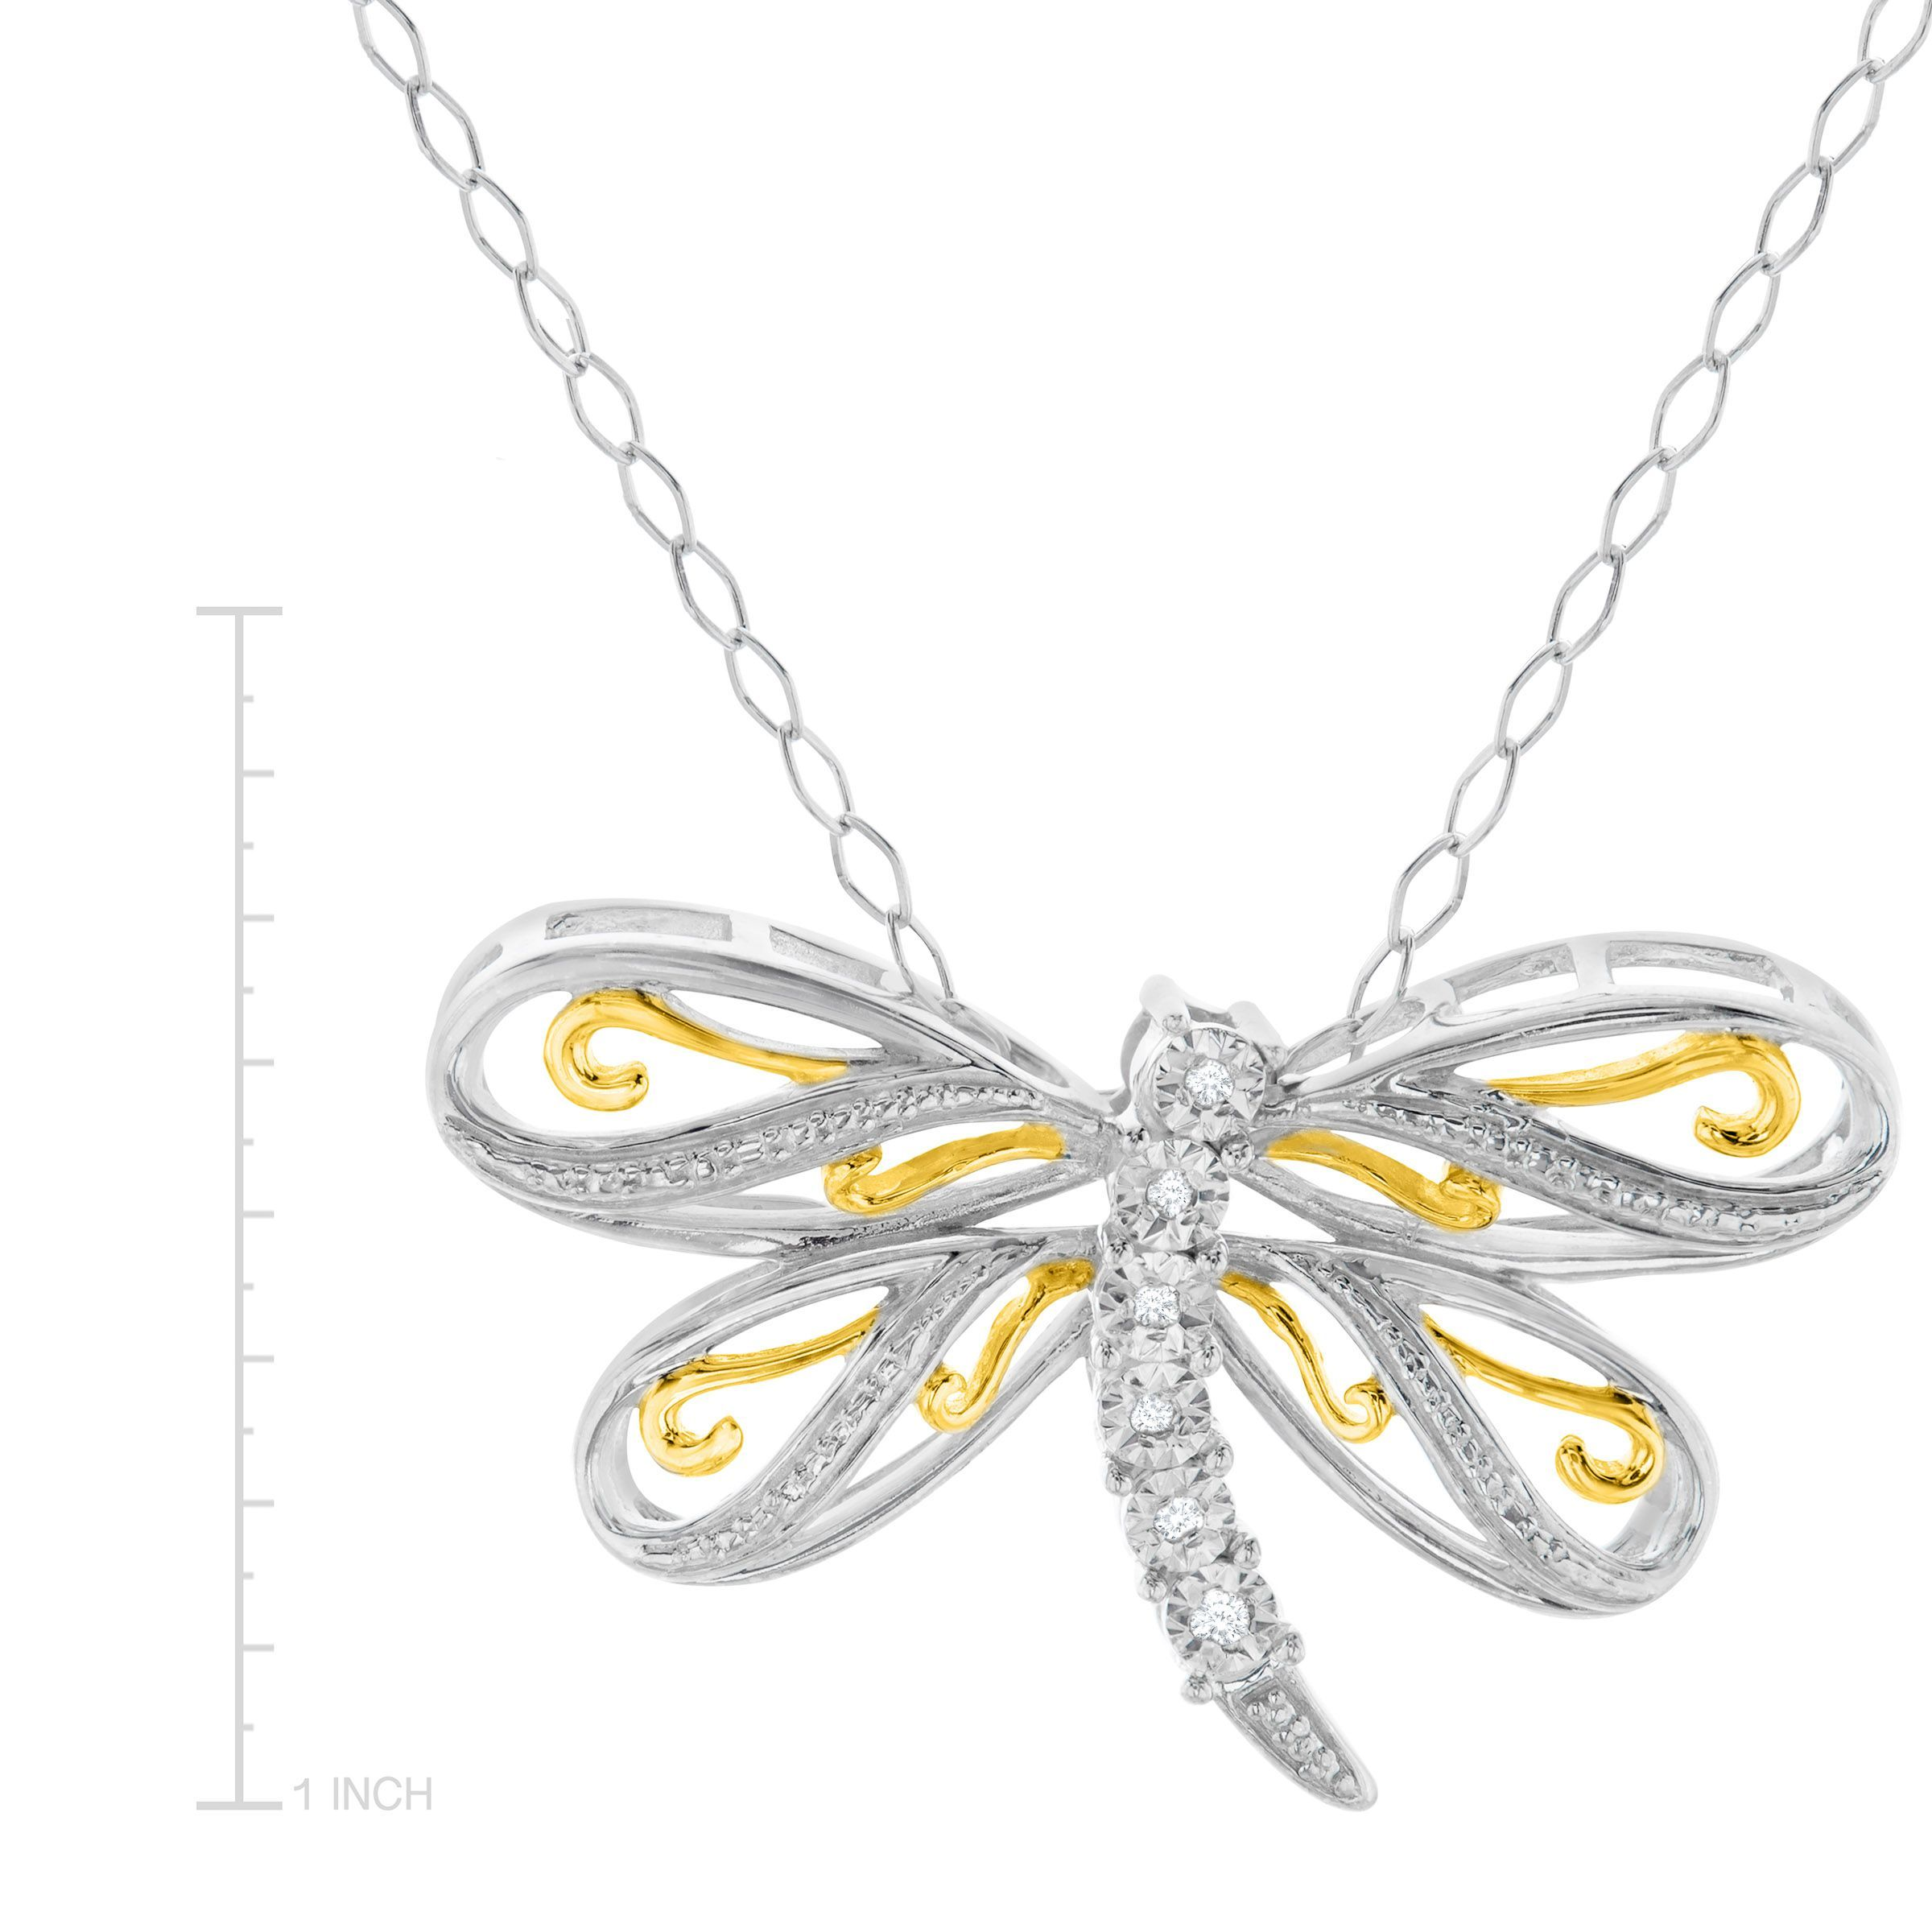 asp pendants charm and school uk silver polished pendant cz sterling crystal dragonfly p